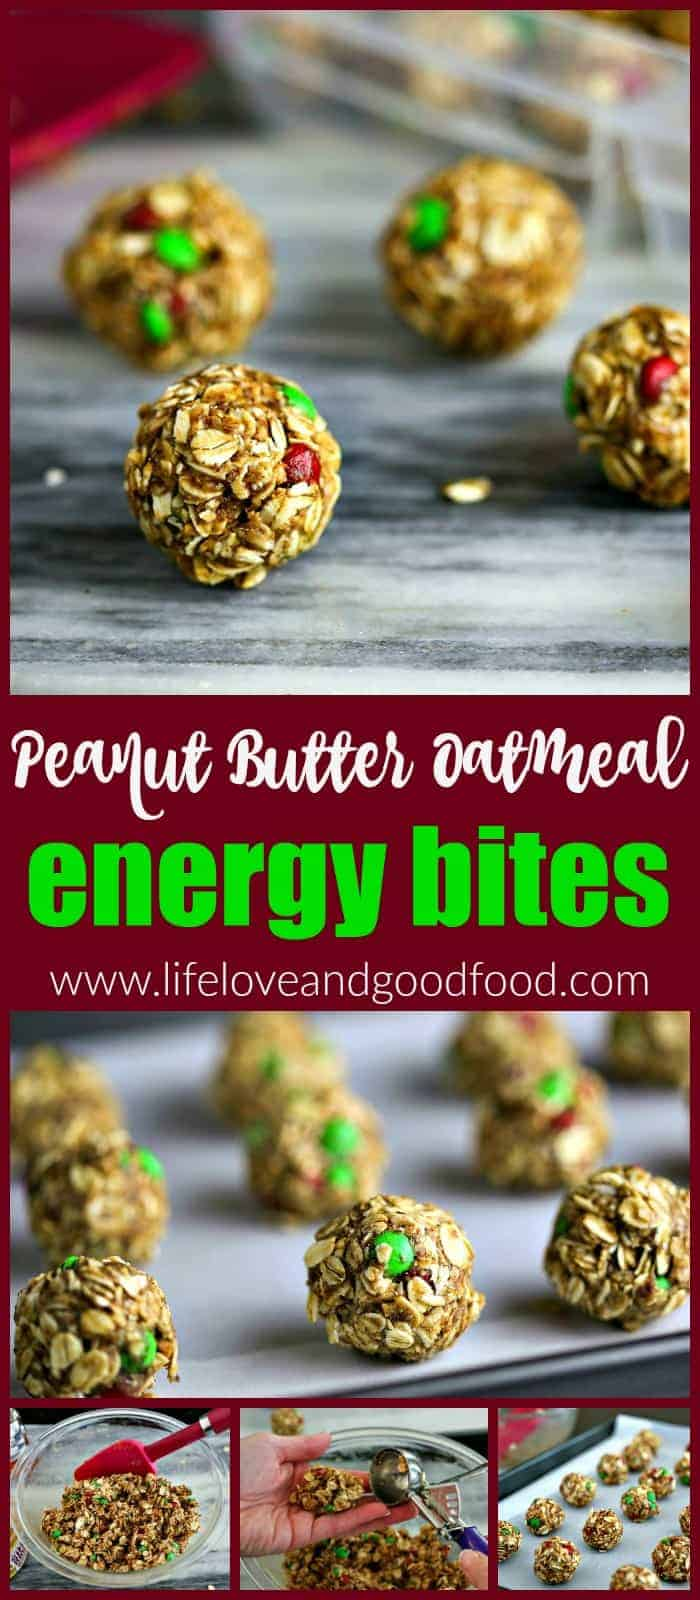 Peanut Butter Oatmeal Energy Bites. Satisfy your cookie craving with these tasty no-guilt, no-bake energy bites sweetened with honey. #nobakesnacks #energybites